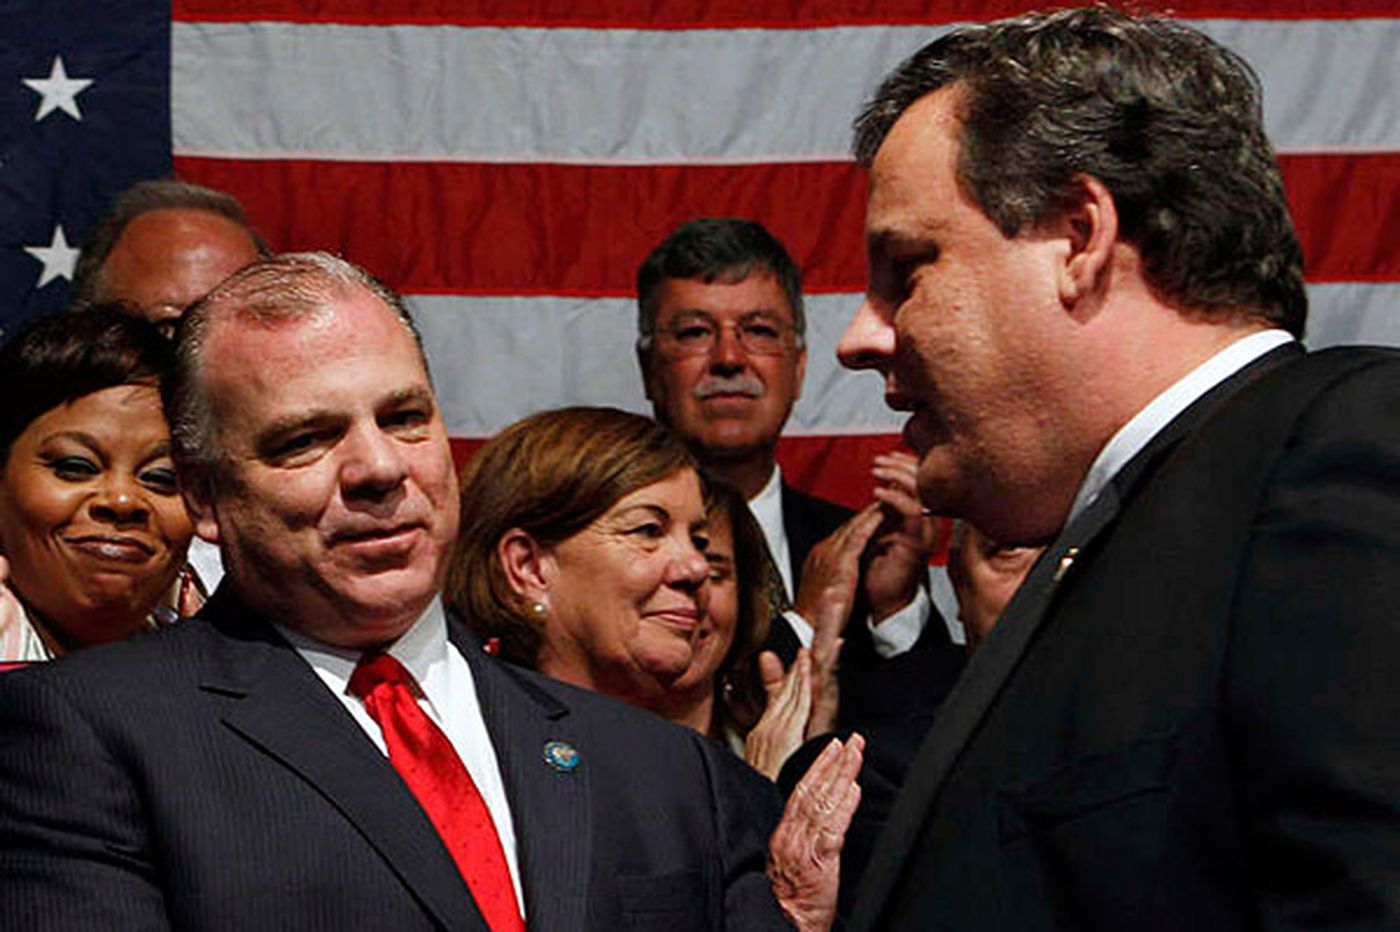 Christie, Democrats blame each other for ethics inaction